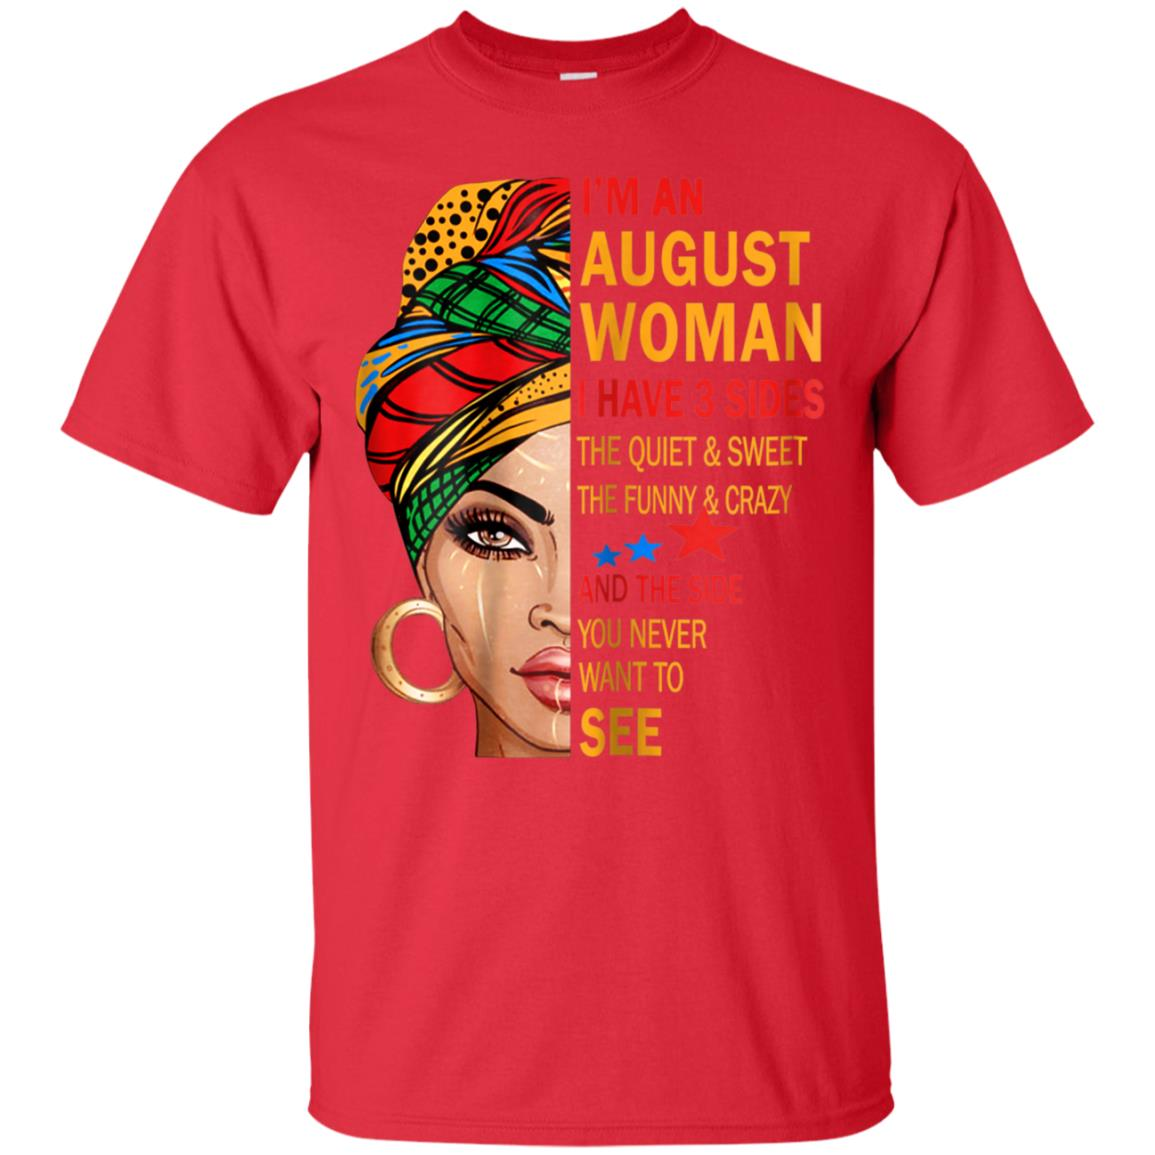 AUGUST WOMAN I HAVE 3 SIDES T SHIRT BIRTHDAY